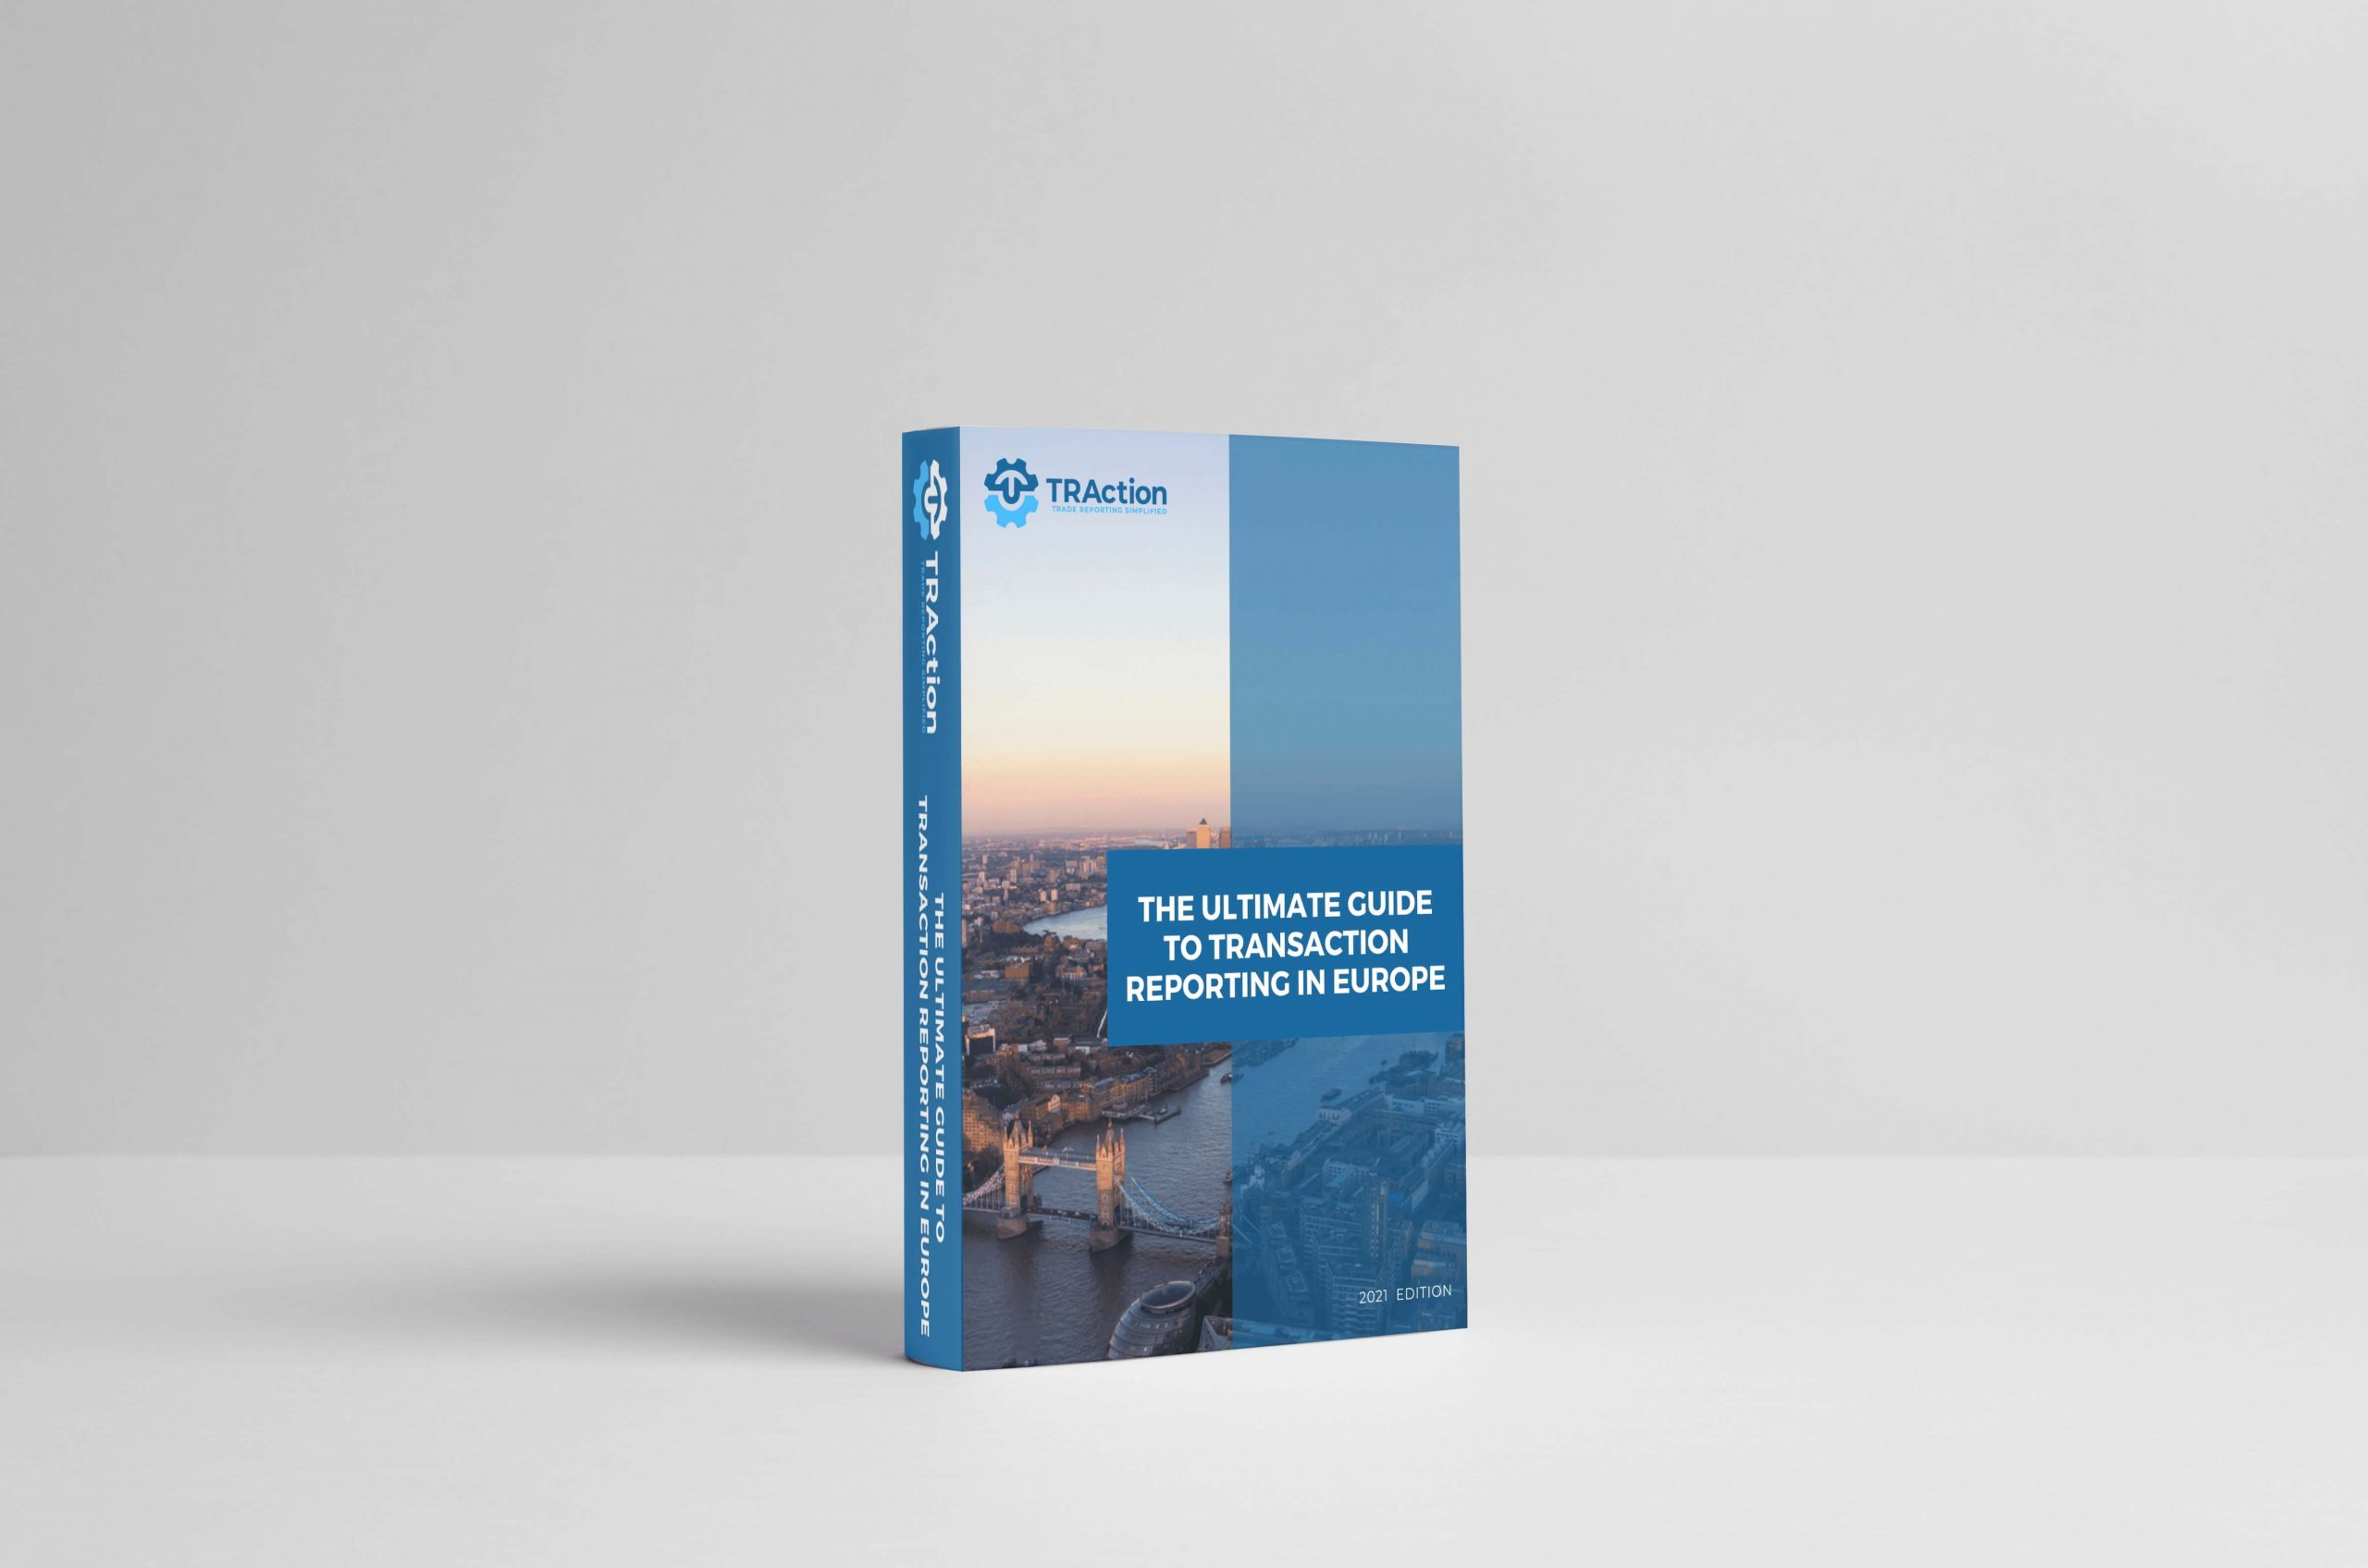 Ultimate Guide to Transaction Reporting in Europe